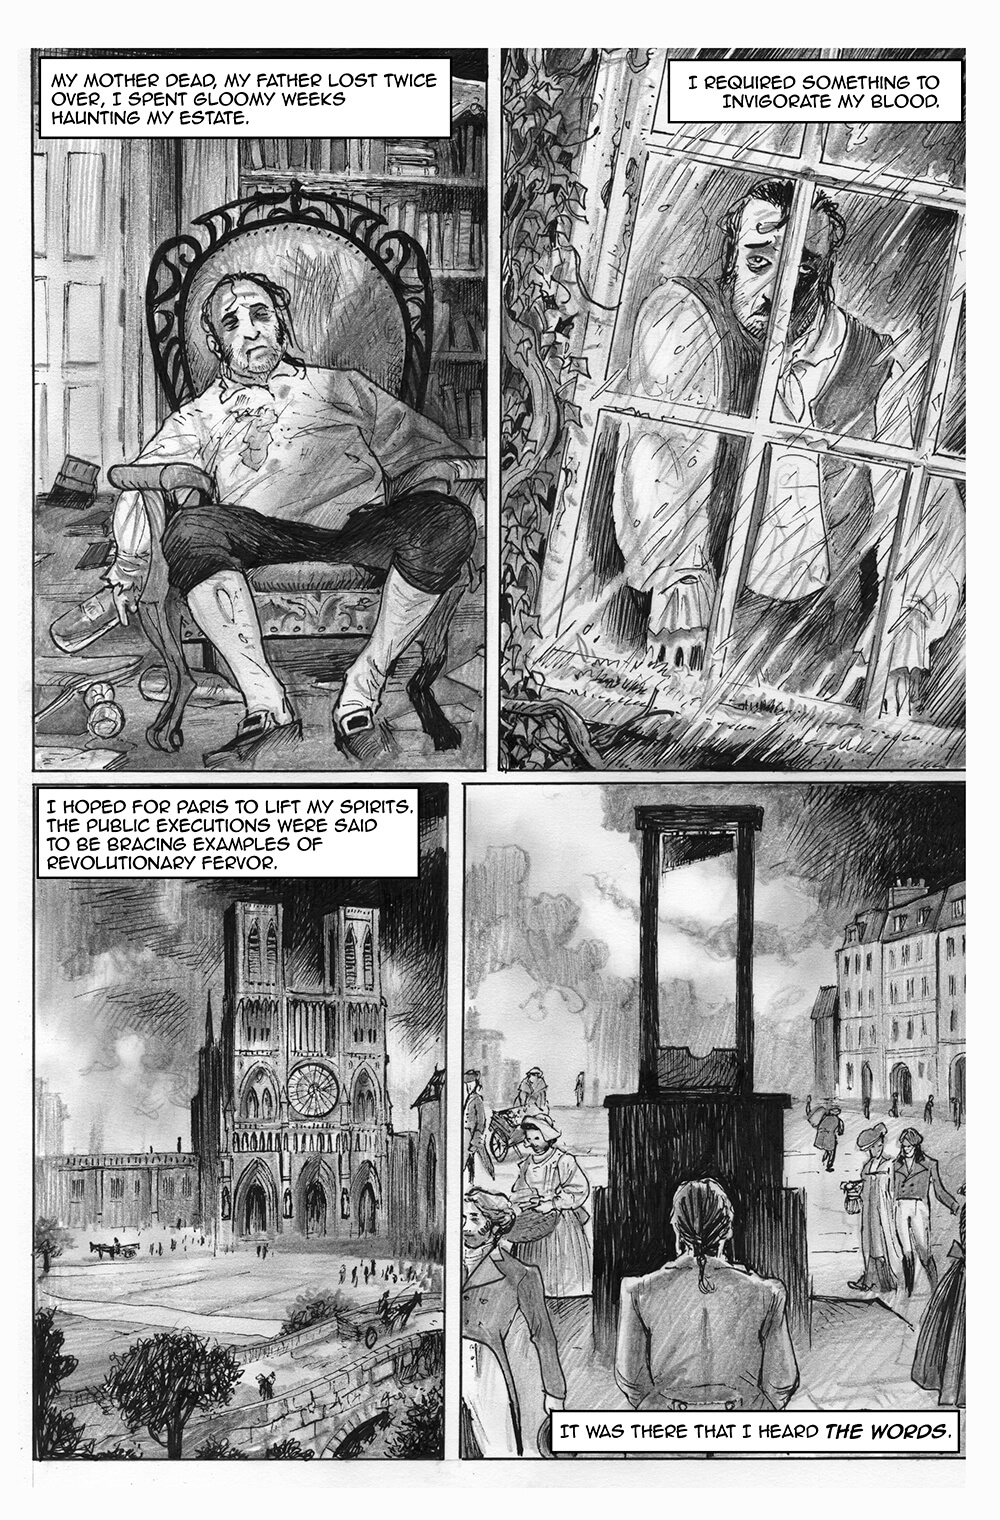 Doux Didou, page 4, by Sam Costello and David Hitchcock